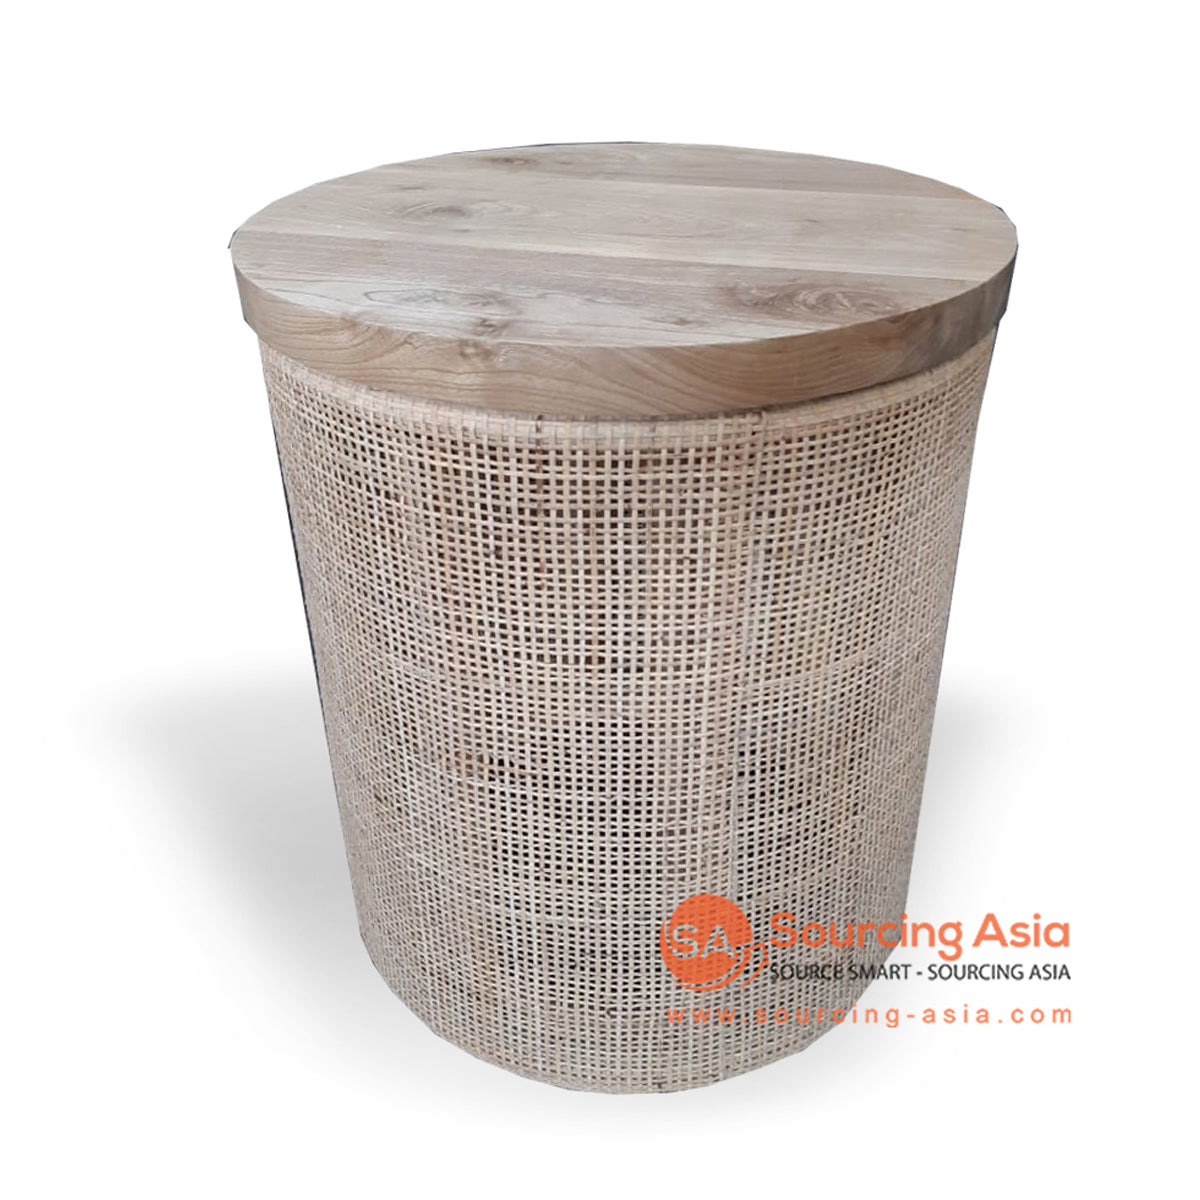 BNT222 RATTAN SIDE TABLE WITH TEAK WOOD TOP